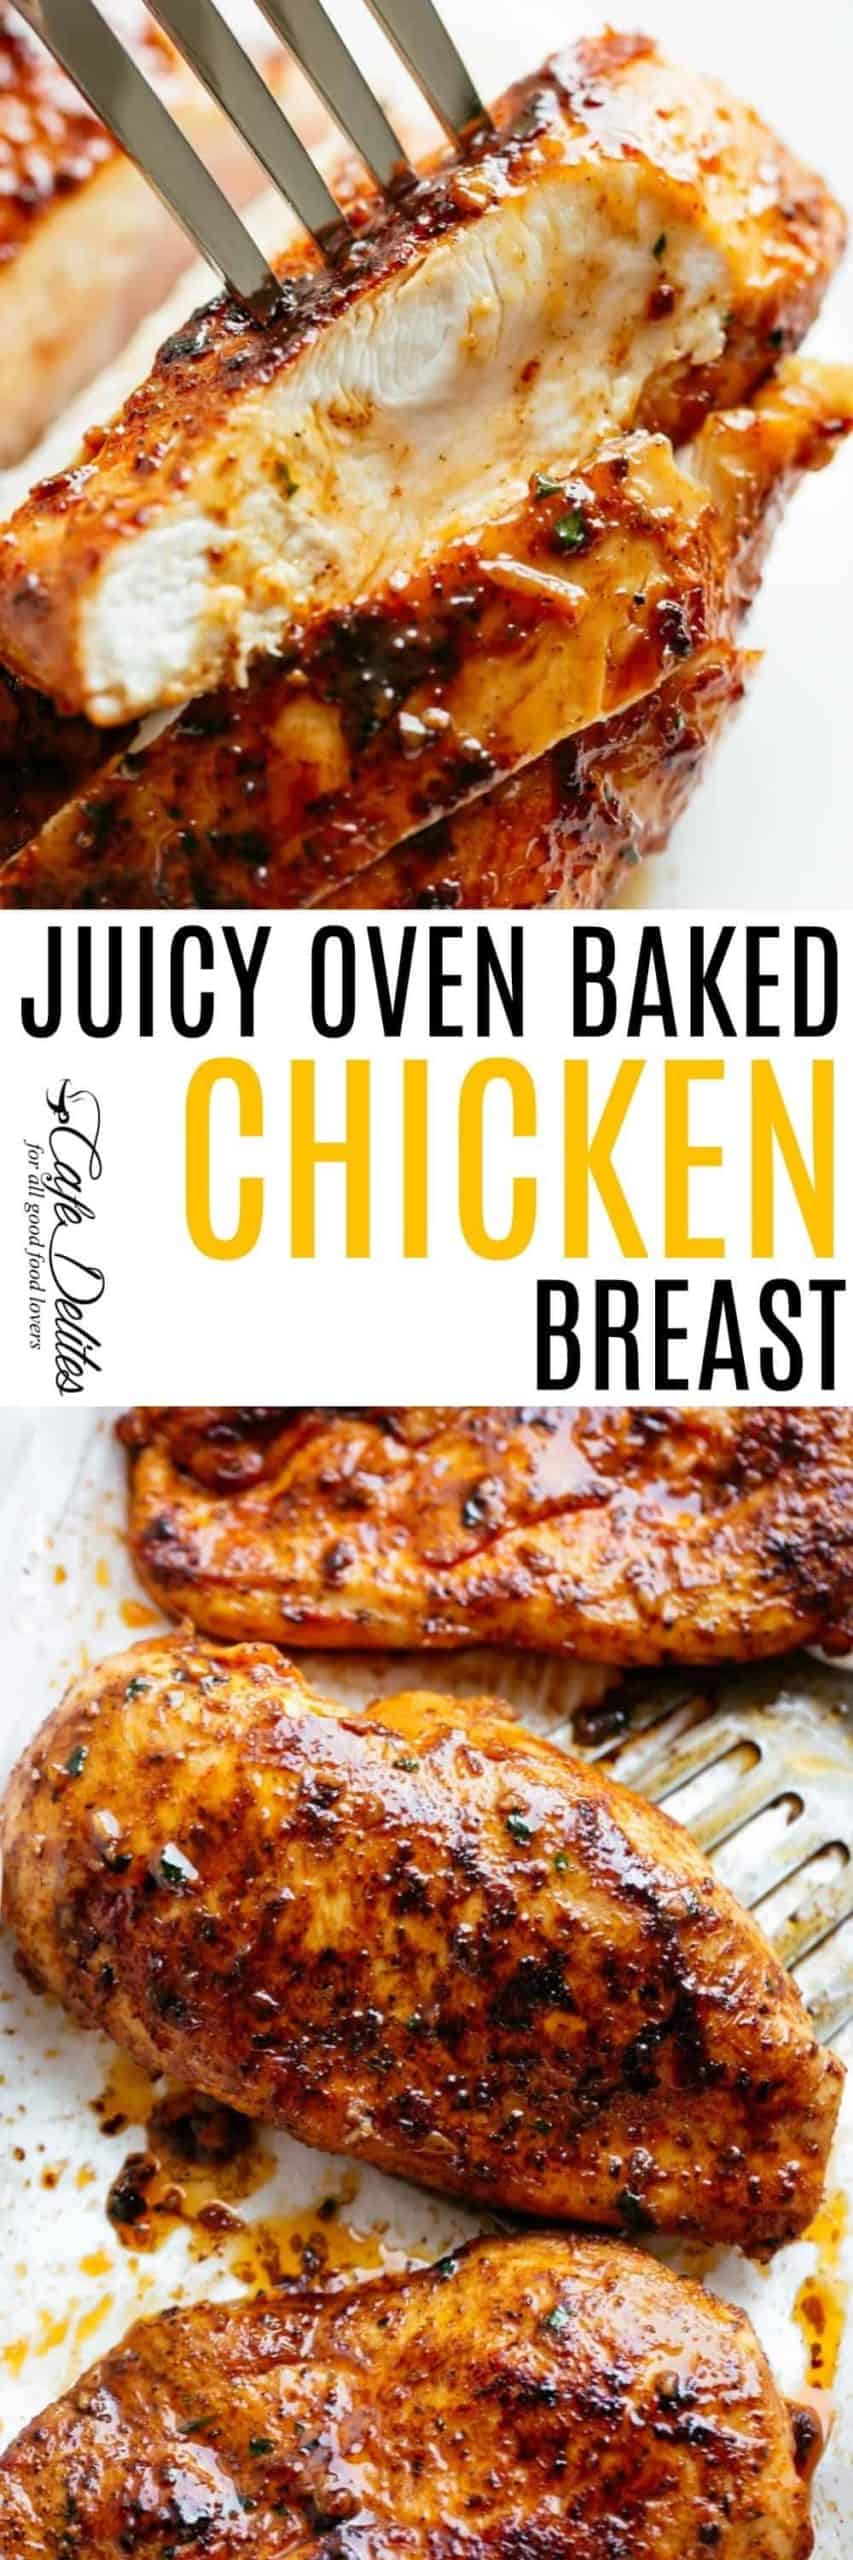 Juicy Oven Baked Chicken Breast Cafe Delites